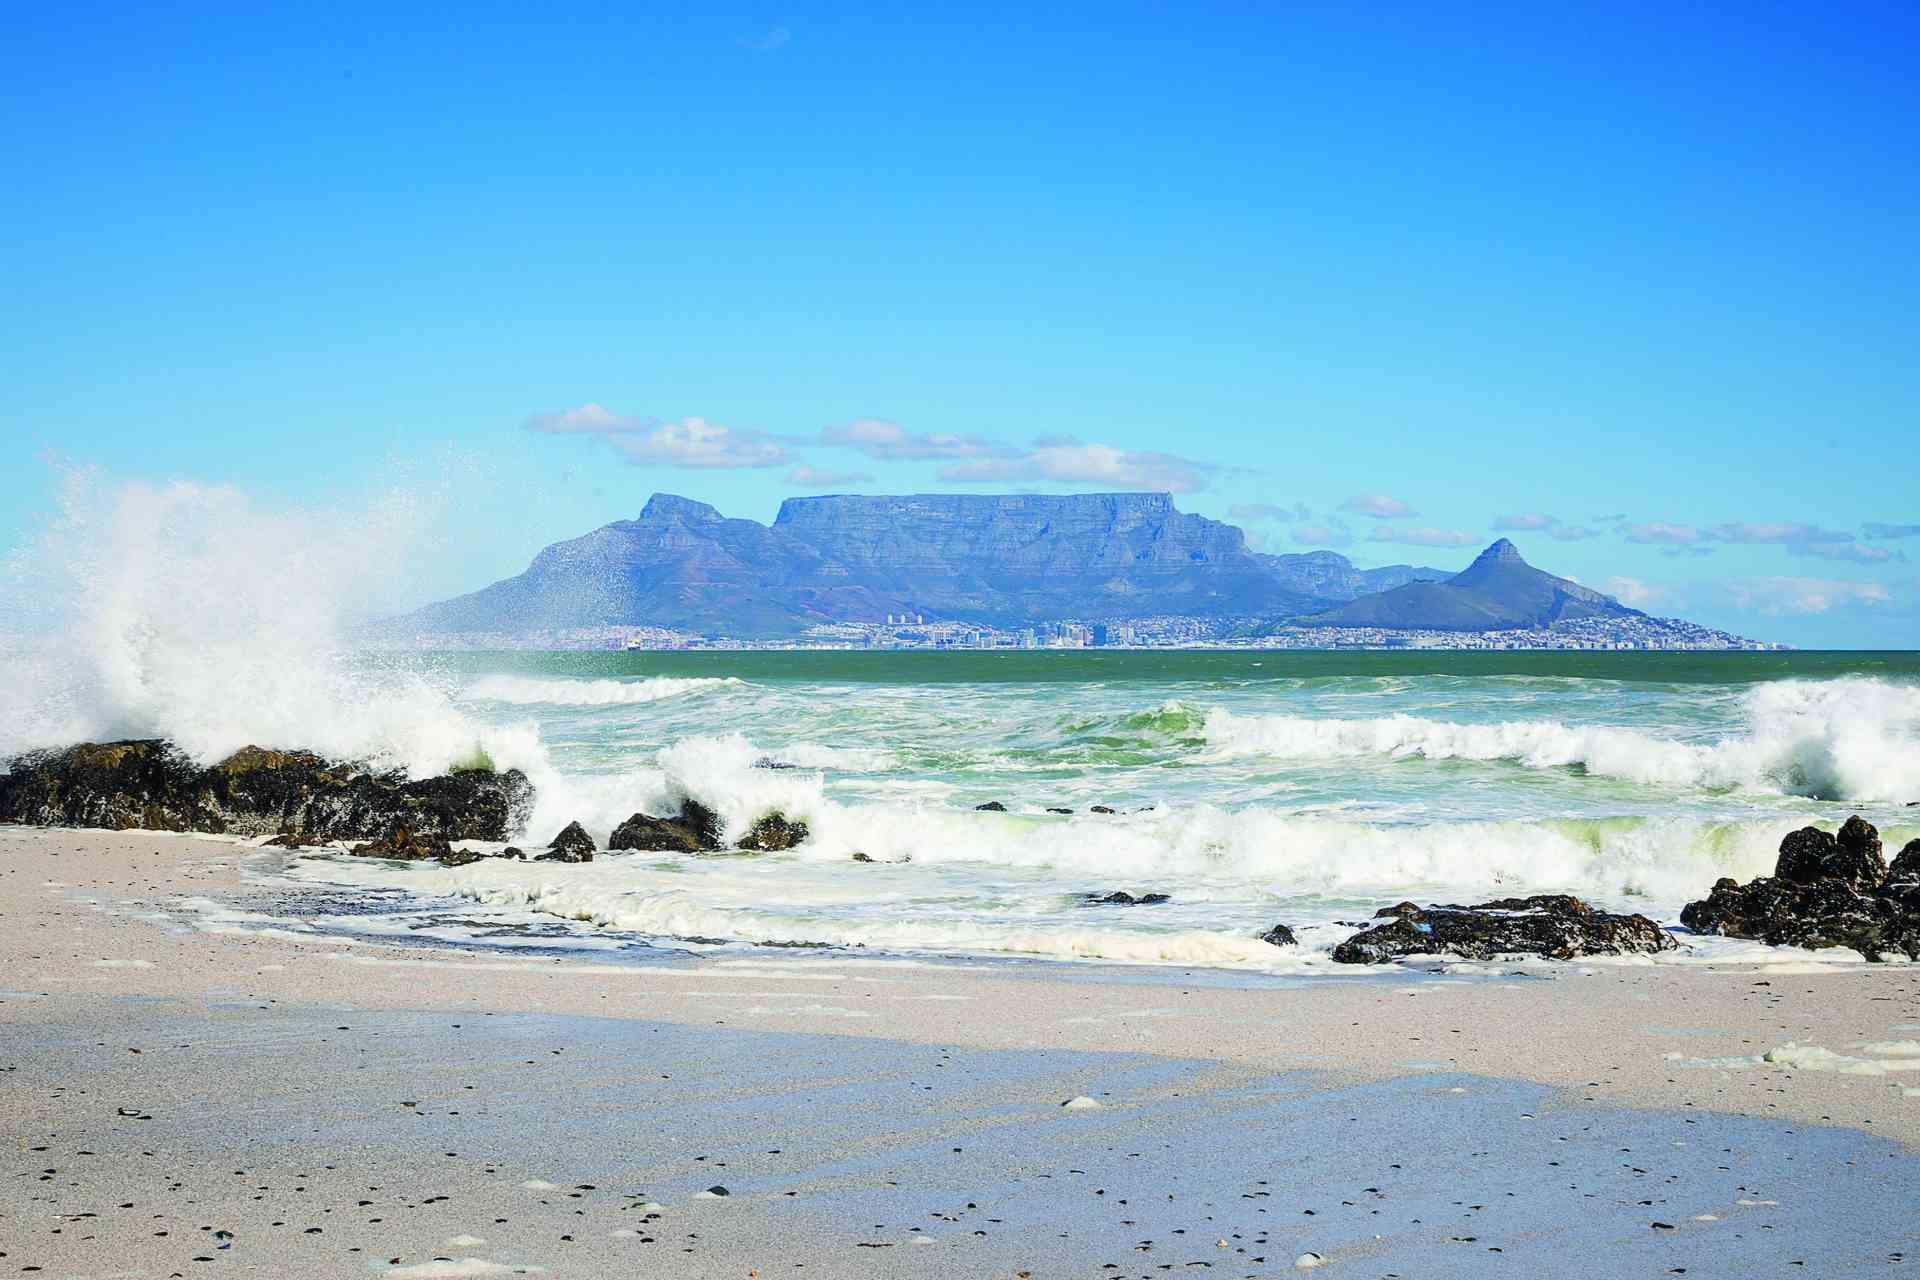 Cape Town, South Africa by Graham Meale